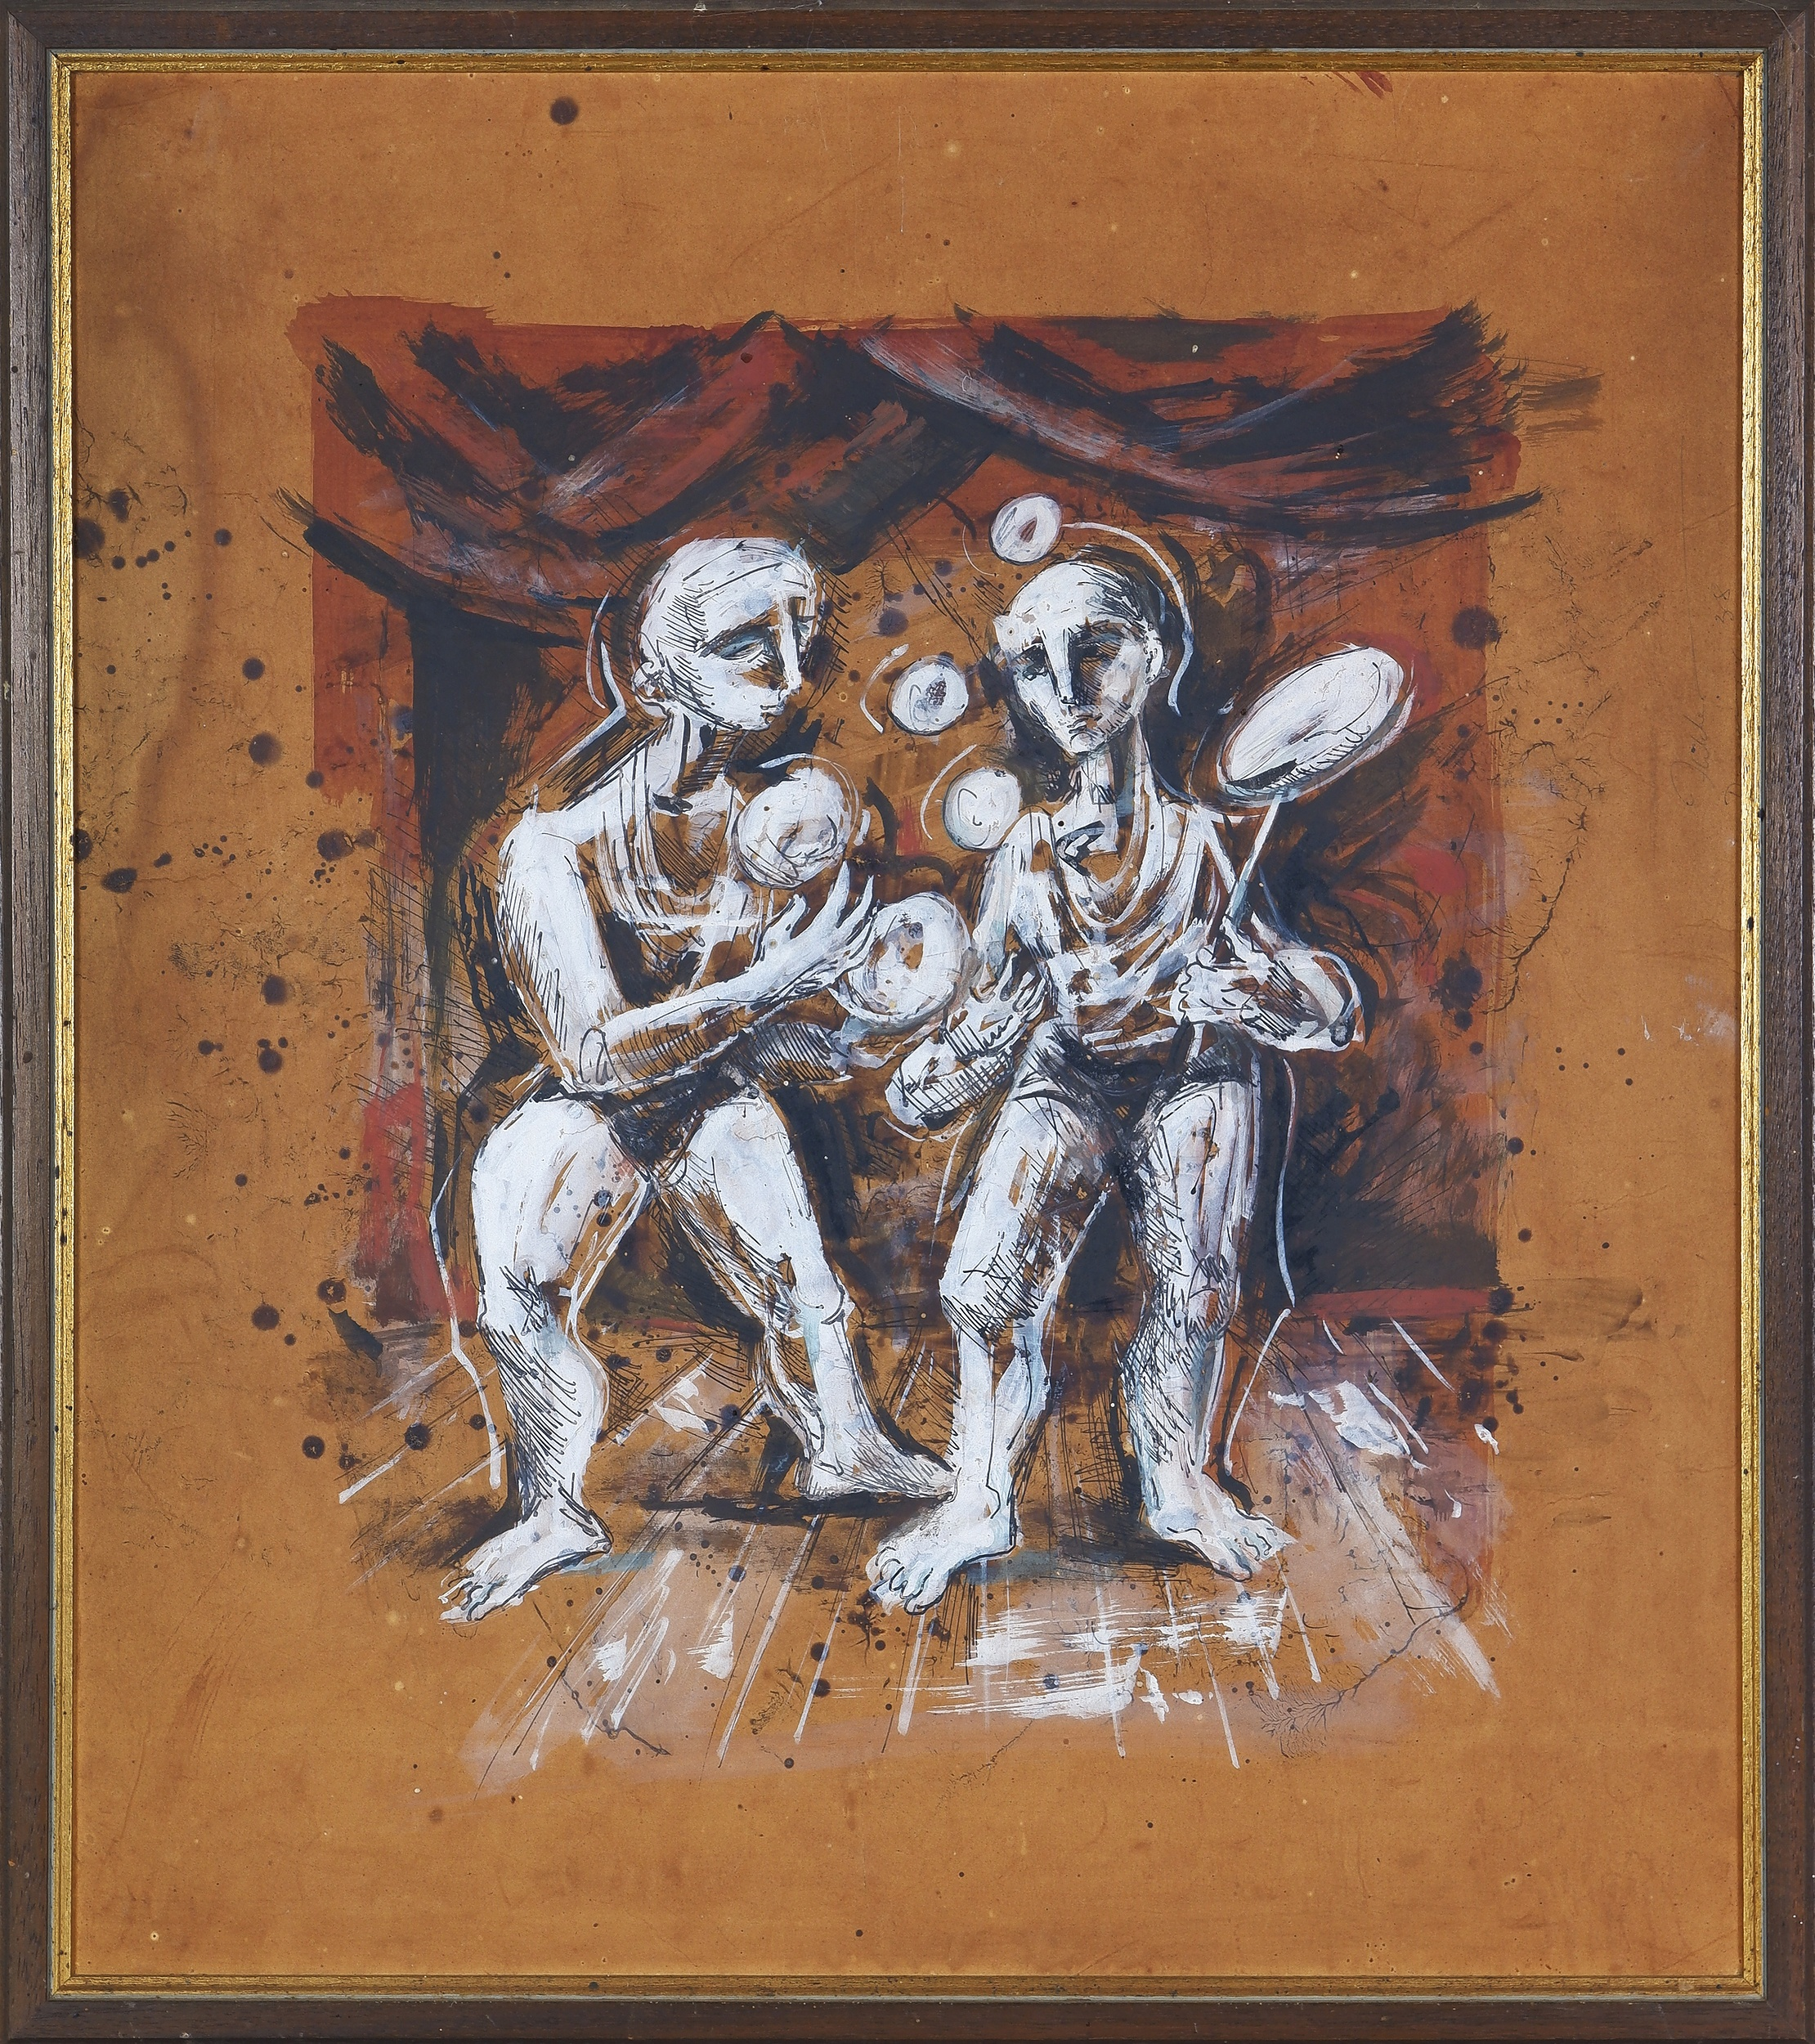 'William Fletcher (1924-1983), Dancers, Ink and Watercolour on Paper'